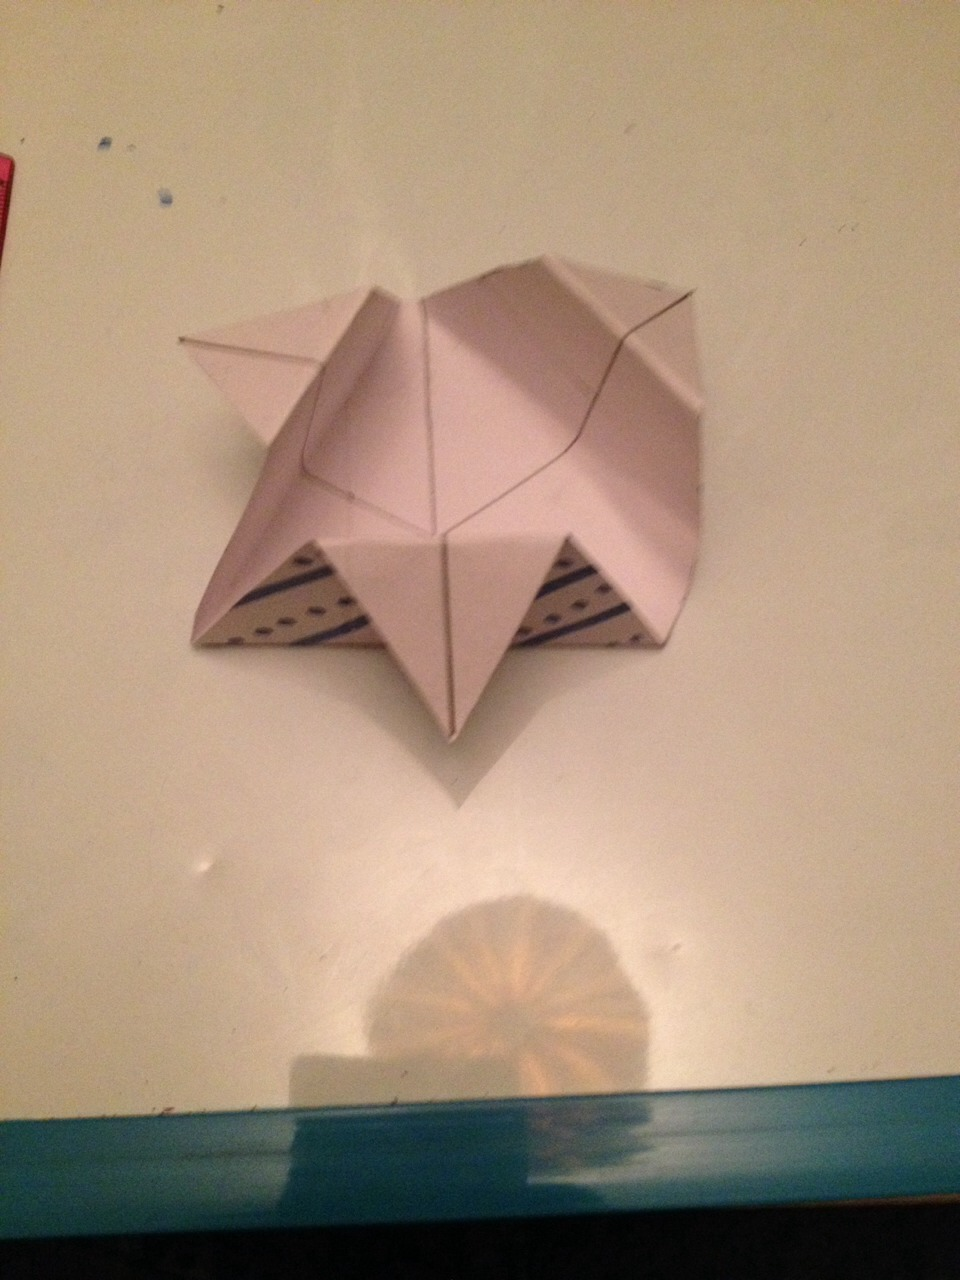 Then fold the corners down